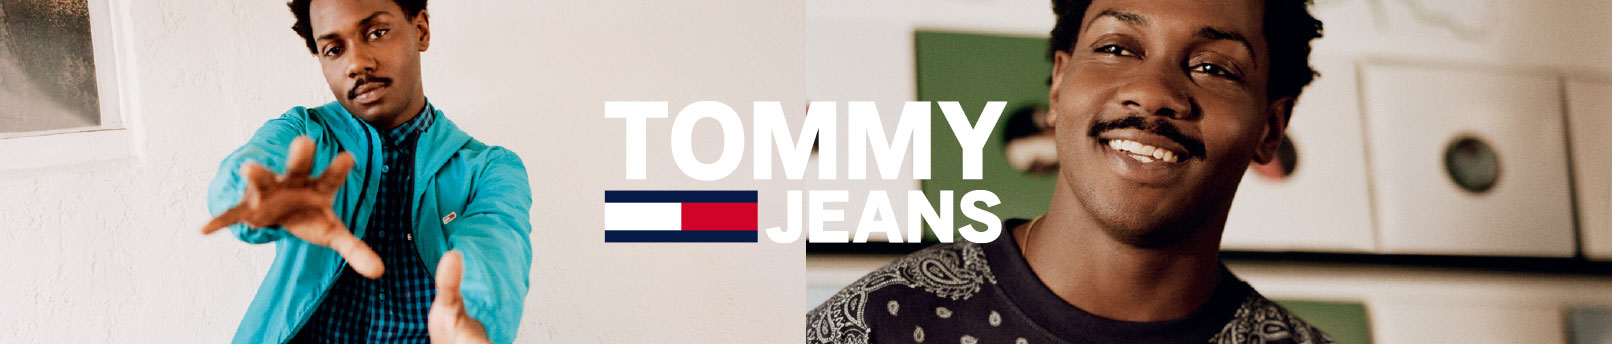 Odkryj Tommy Jeans